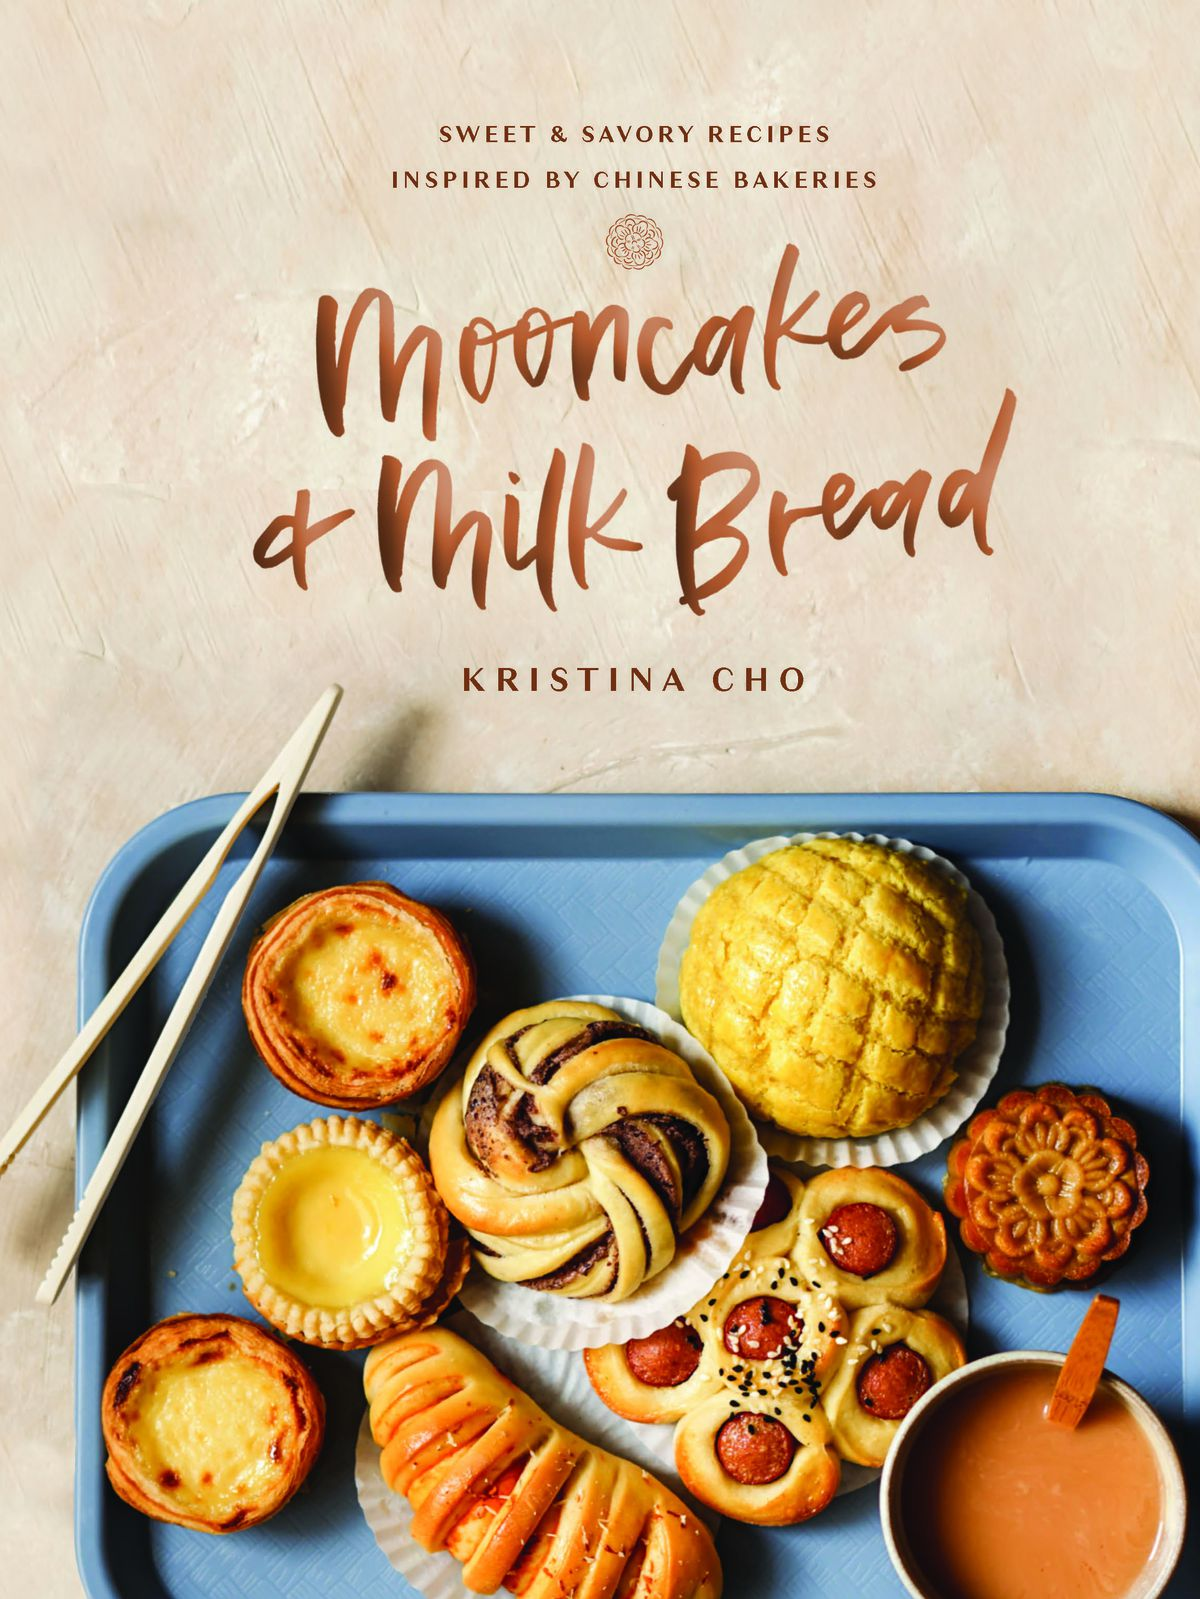 A cookbook cover with an array of Chinese baked goods